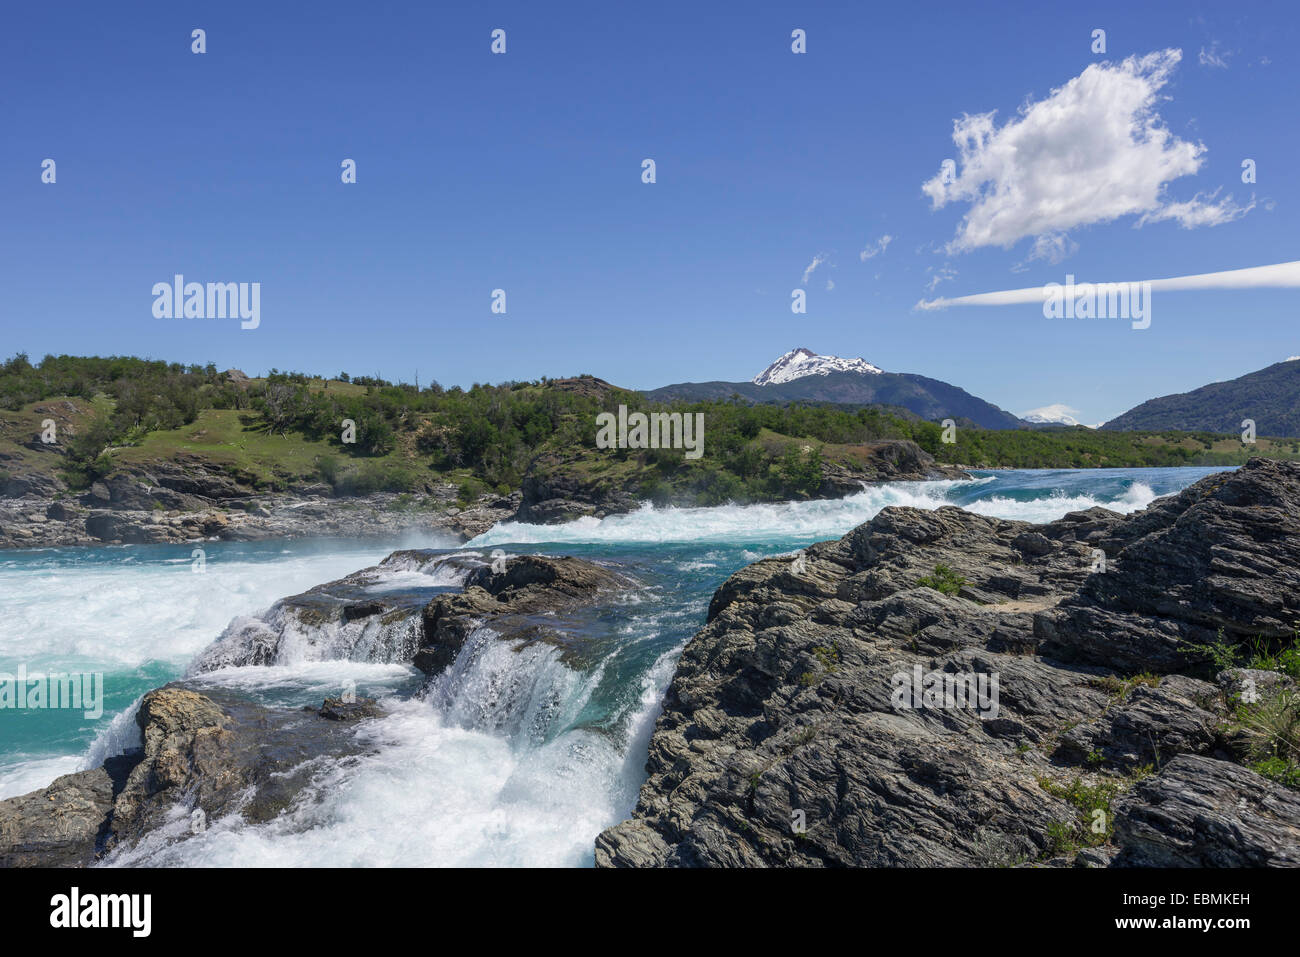 Rapids of the Baker River, Cochrane, Aysén Region, Chile - Stock Image